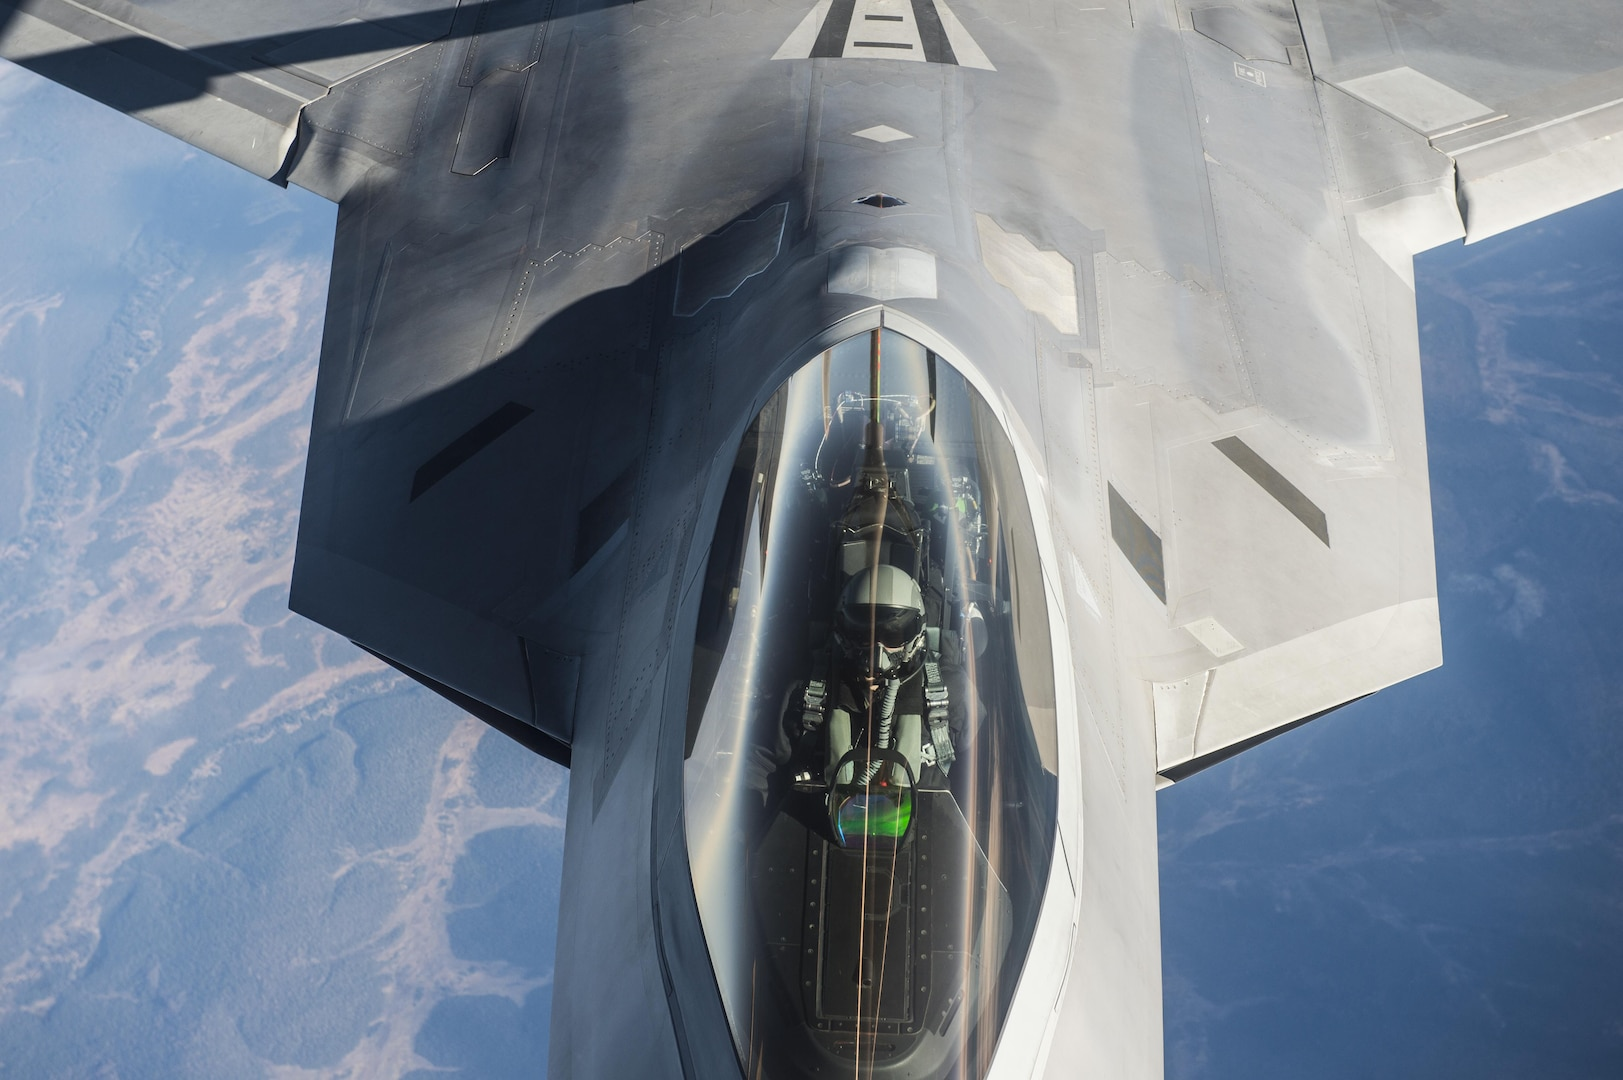 U.S. Air Force F-22 Raptors from Joint Base Elmendorf-Richardson, Alaska, receive fuel from a KC-135 Stratotanker flown by the 92nd Aerial Refueling Squadron from Fairchild Air Force Base, Wa., while both units participate in the Vigilant Shield 2017 Field Training Exercise 17 Oct., 2016, in the high arctic. (U.S. Air Force Photo by Tech. Sgt. Gregory Brook)